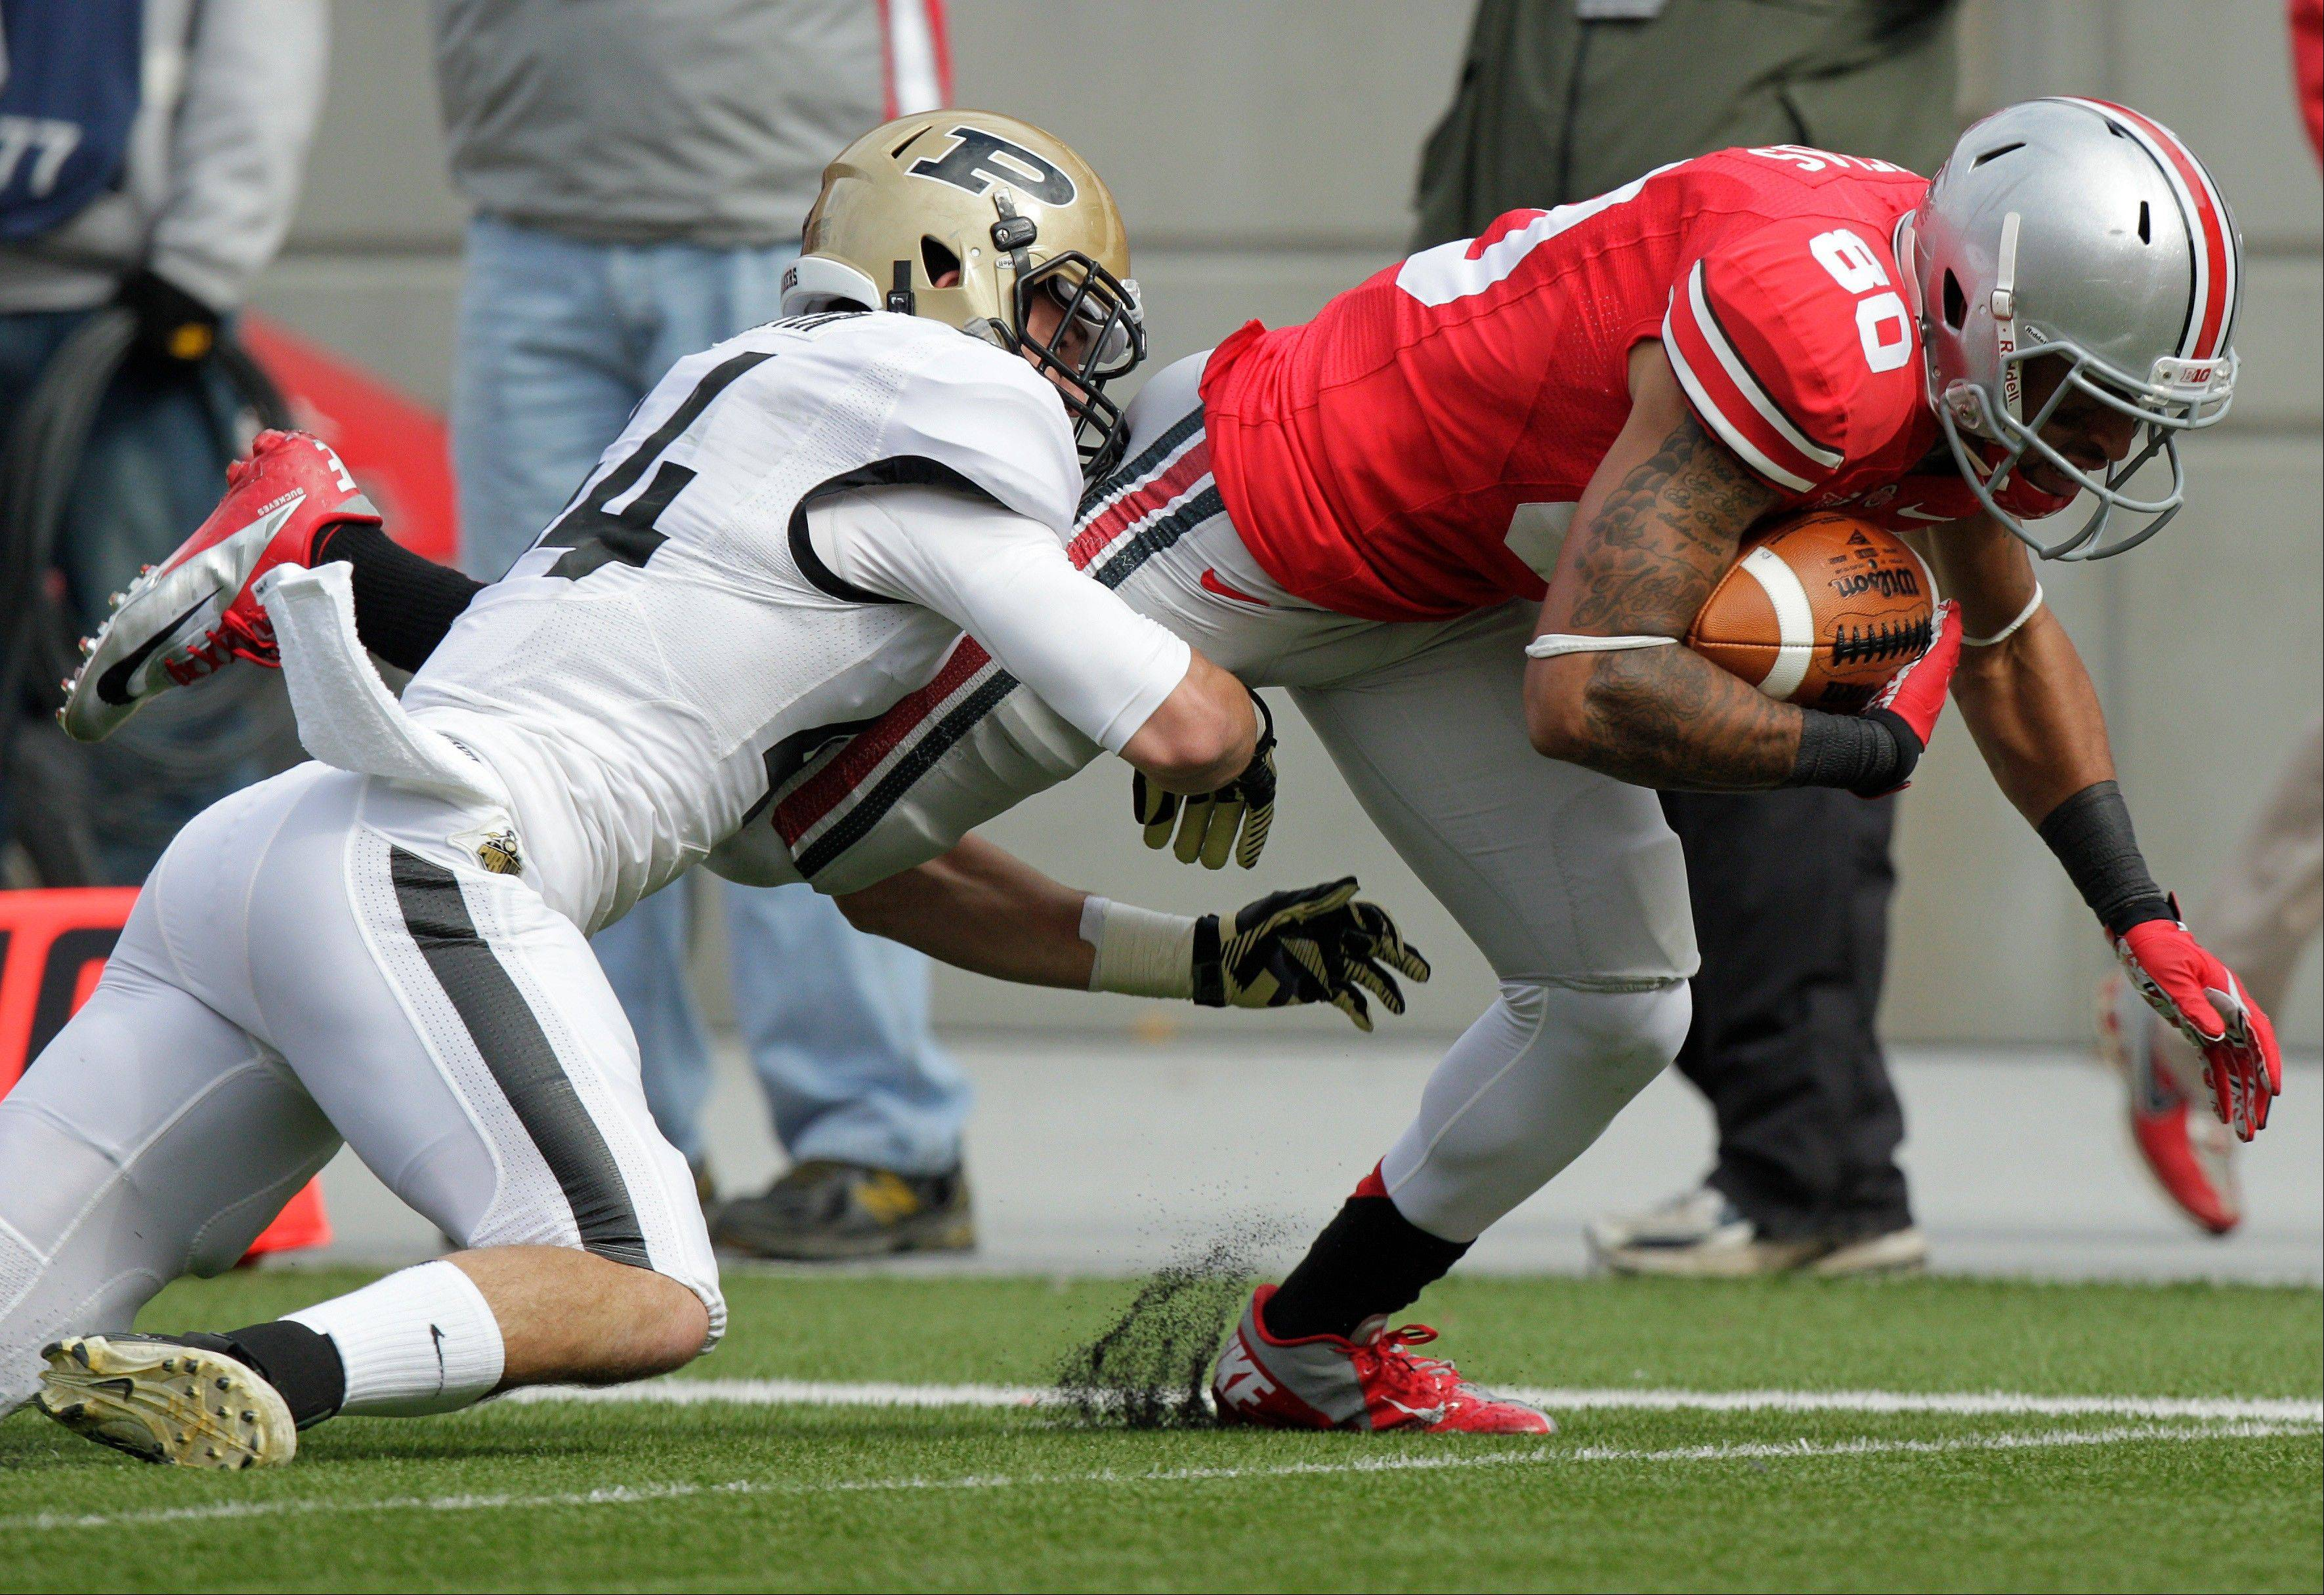 Ohio State wide receiver Chris Fields, right, is tackled by Purdue safety Landon Feichter Saturday during the third quarter. Ohio State and Penn State are both unbeaten in conference play, and they're playing each other this weekend. But thanks to sanctions, neither can compete for the league championship or go to a bowl.